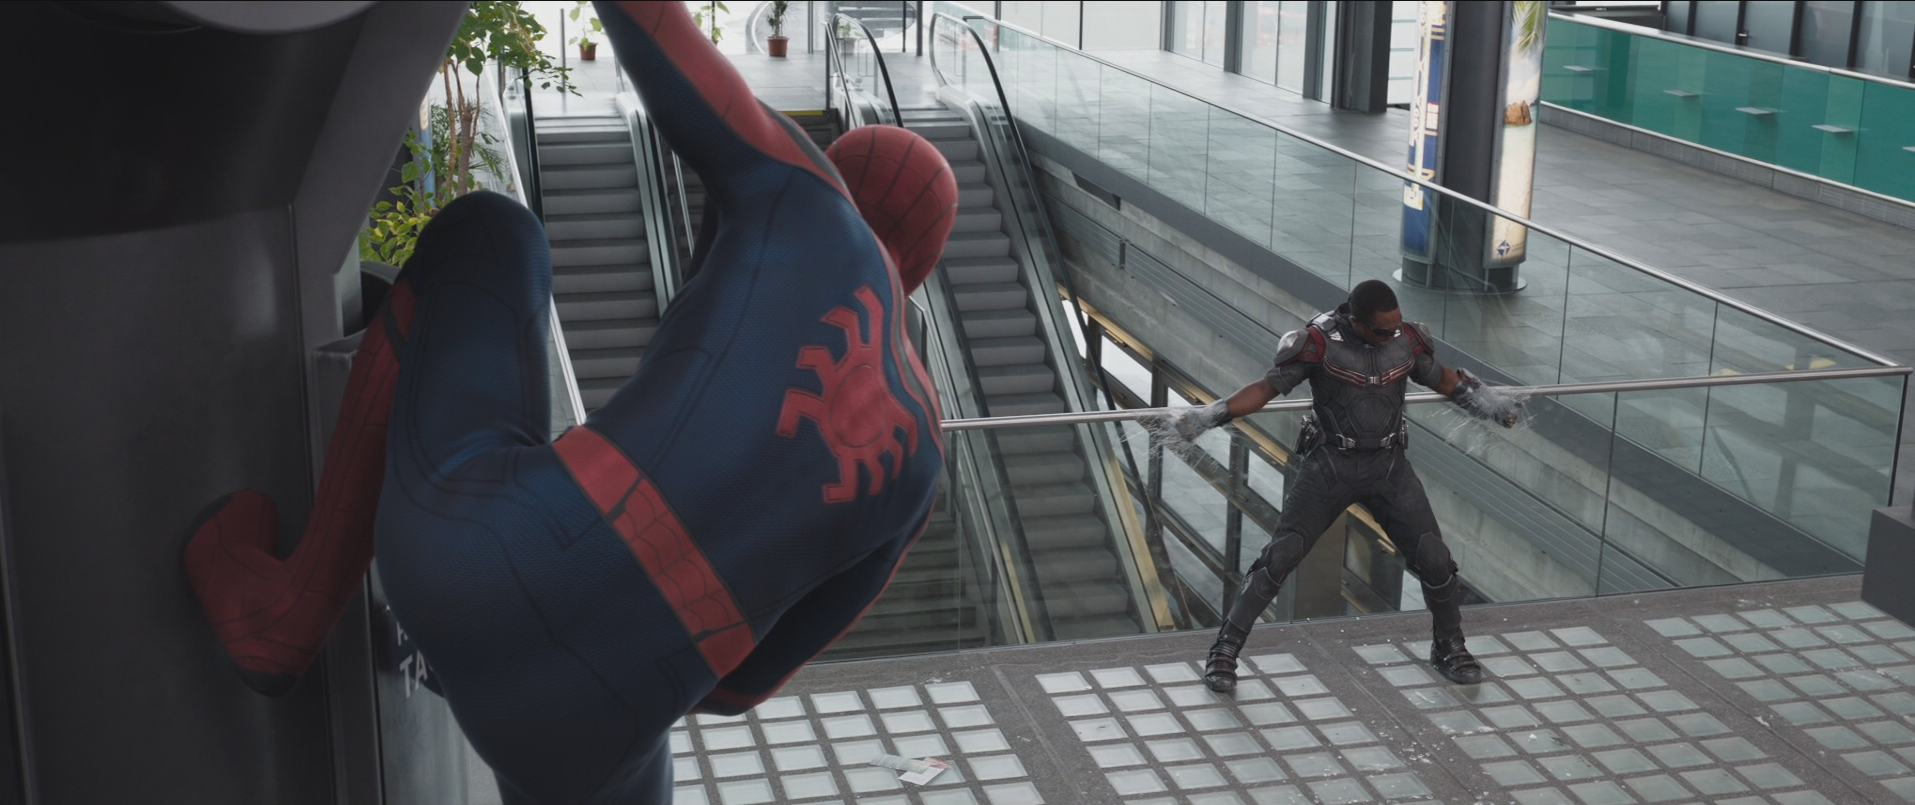 http://abload.de/img/spidey4lbspw.png